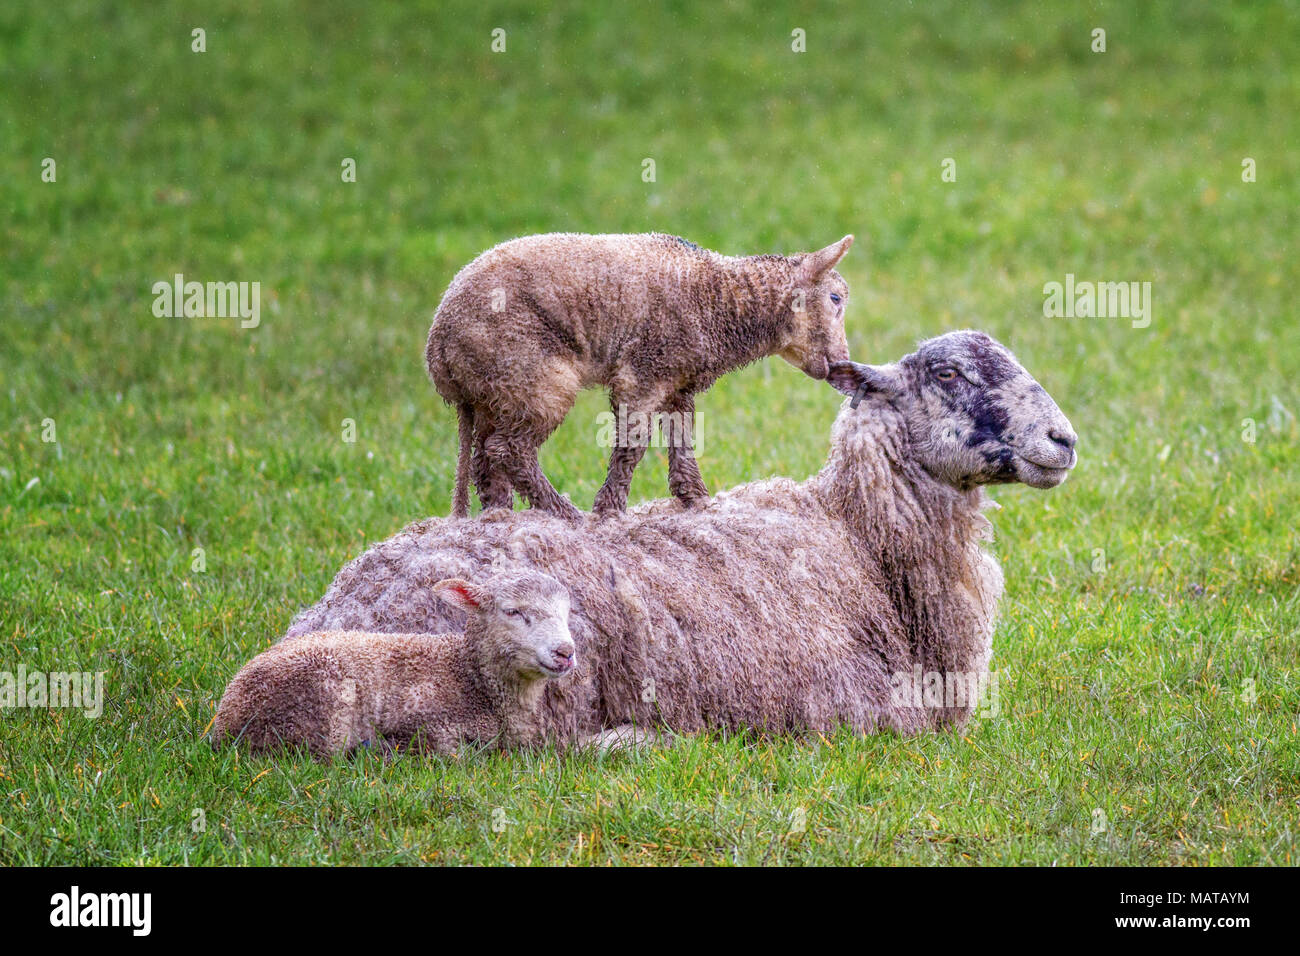 Burley-in-Wharfedale, West Yorkshire. 4th Apr, 2018. UK weather:  Lamb avoiding the wet by standing on its mother's back, 'If I nibble your ear, please can I stay standing up here?'  Rebecca Cole/Alamy Live News - Stock Image